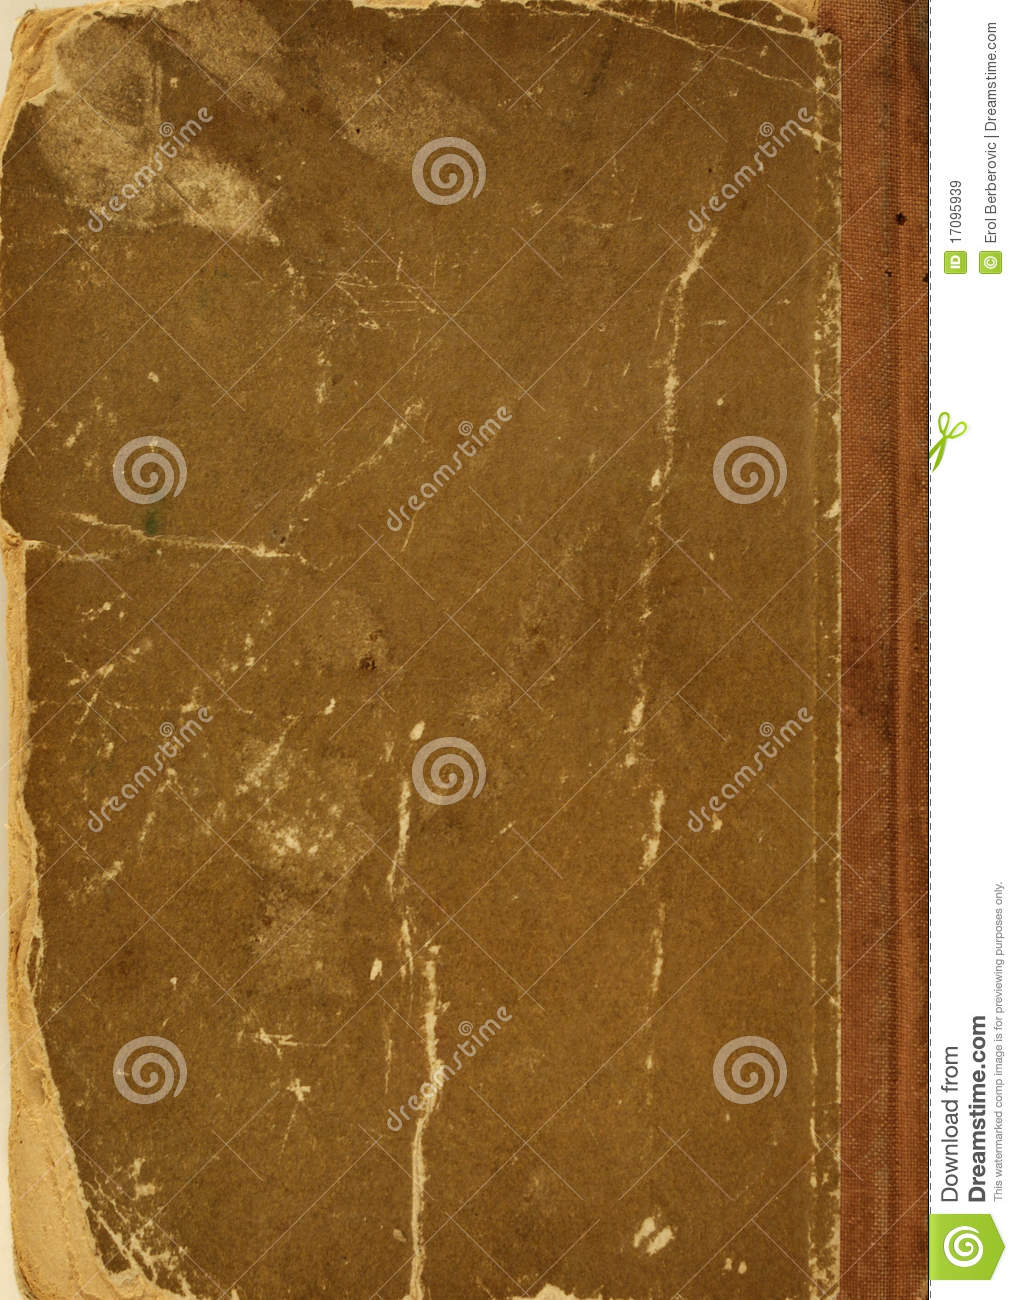 Worn Book Cover Texture : Old book cover royalty free stock images image